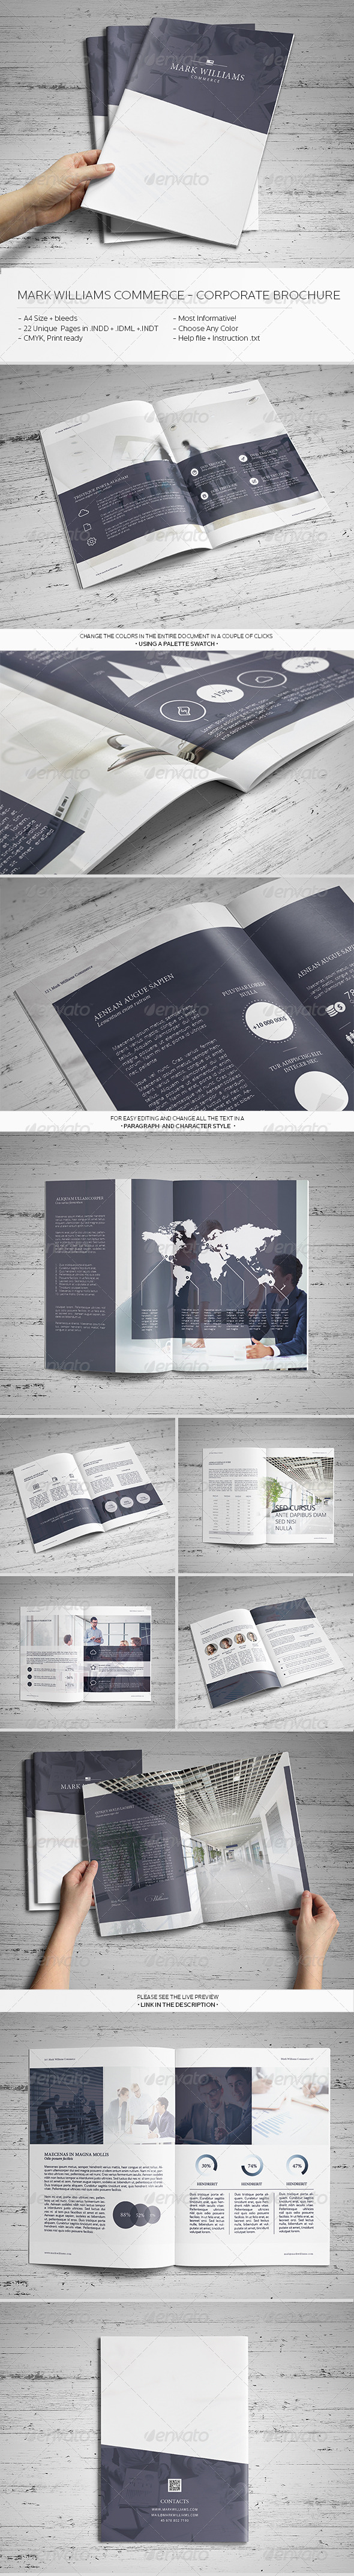 GraphicRiver Mark Williams Commerce Corporate Brochure 6646919